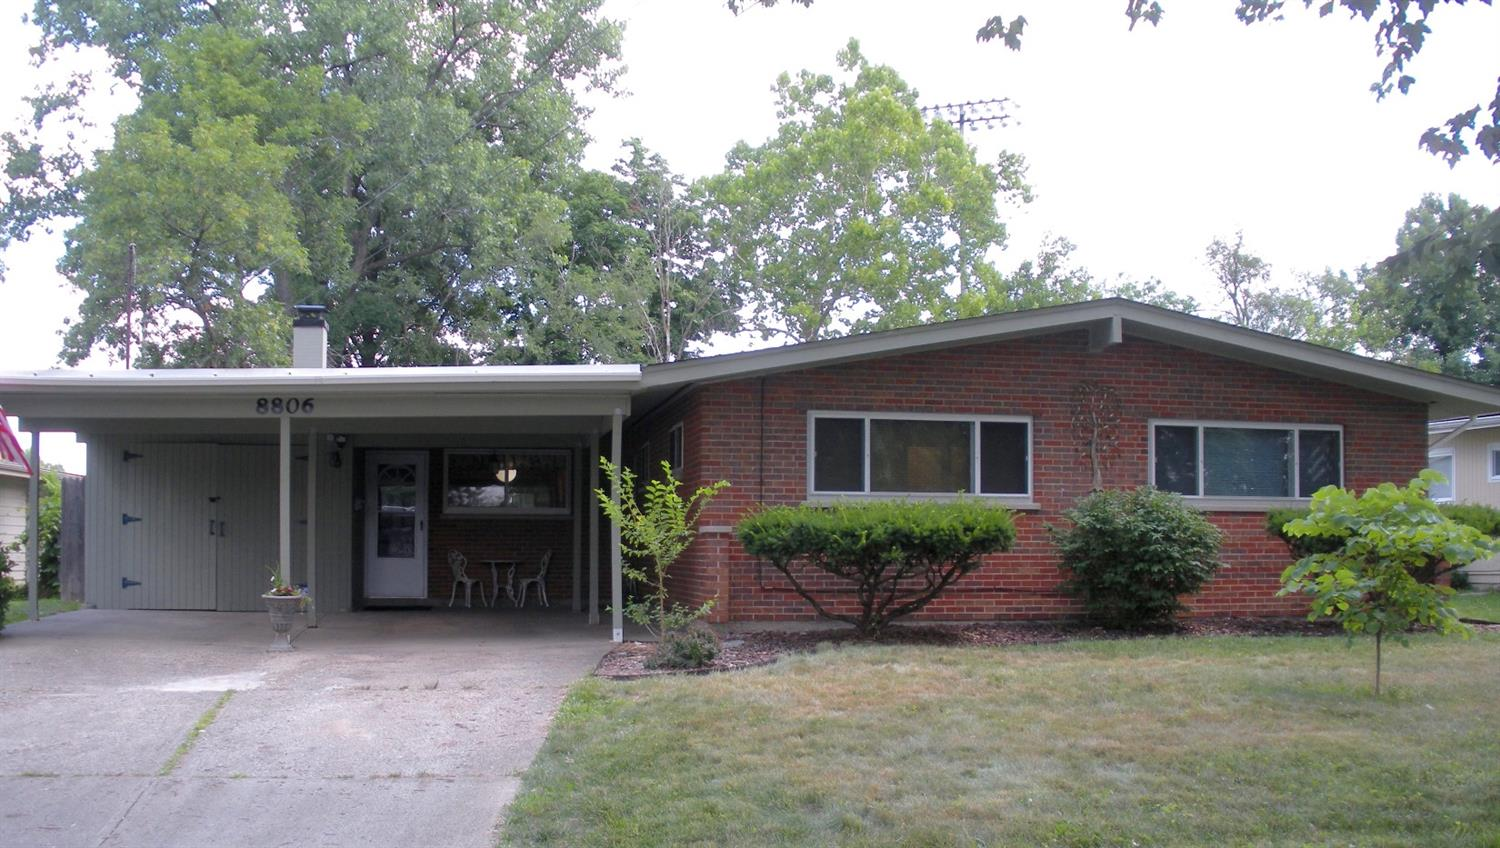 8806 Fontainebleau Ter Finneytown, OH